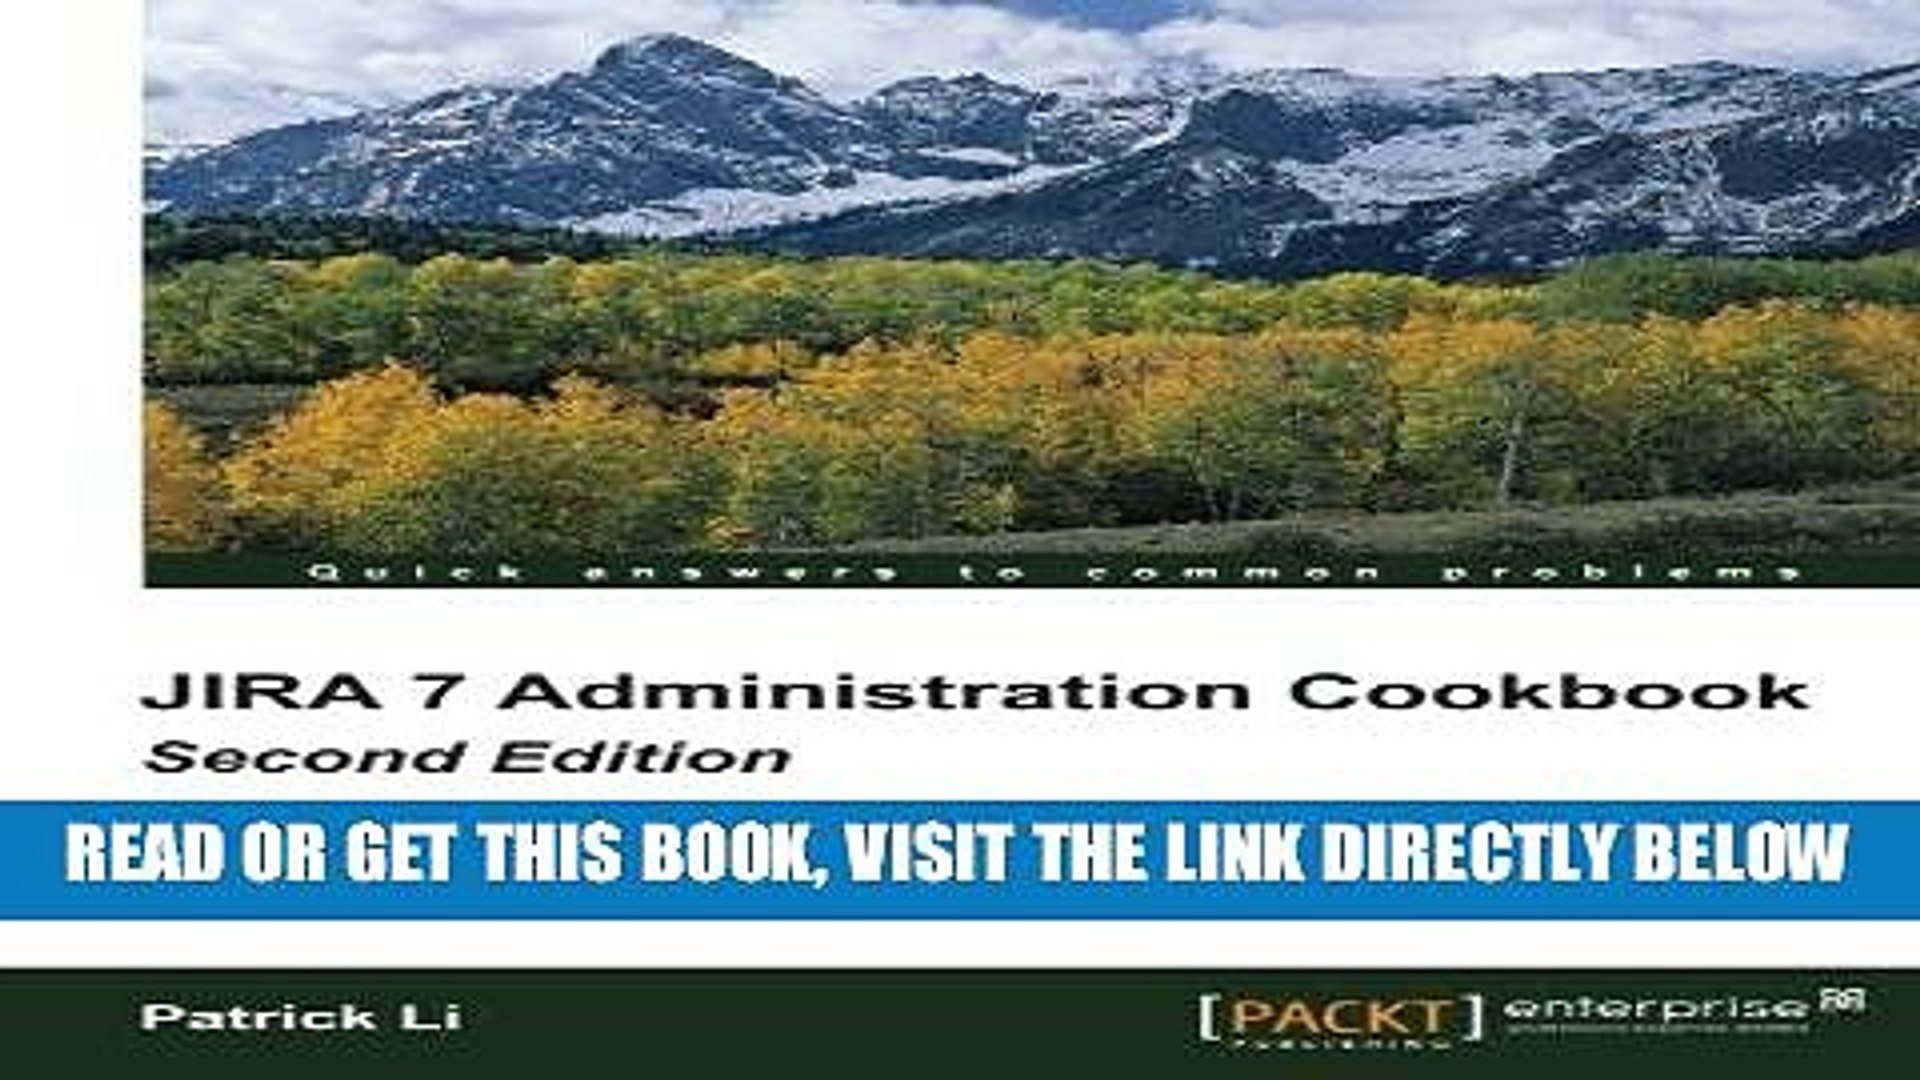 [Free Read] JIRA 7 Administration Cookbook - Second Edition Full Download